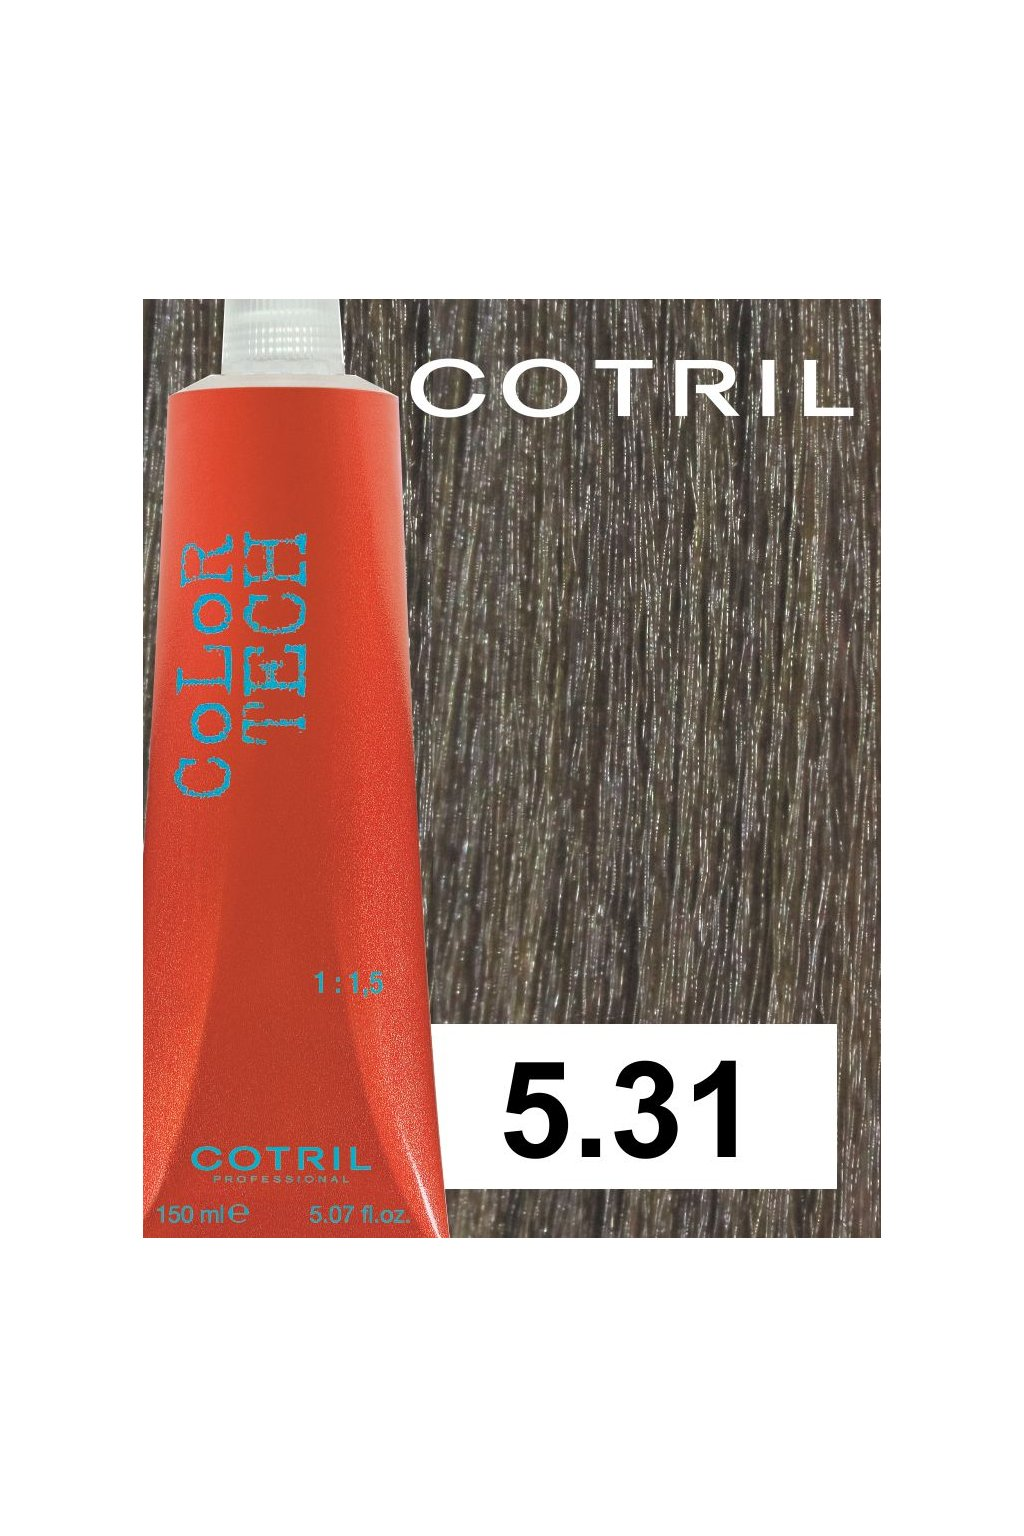 5 31 ct cotril